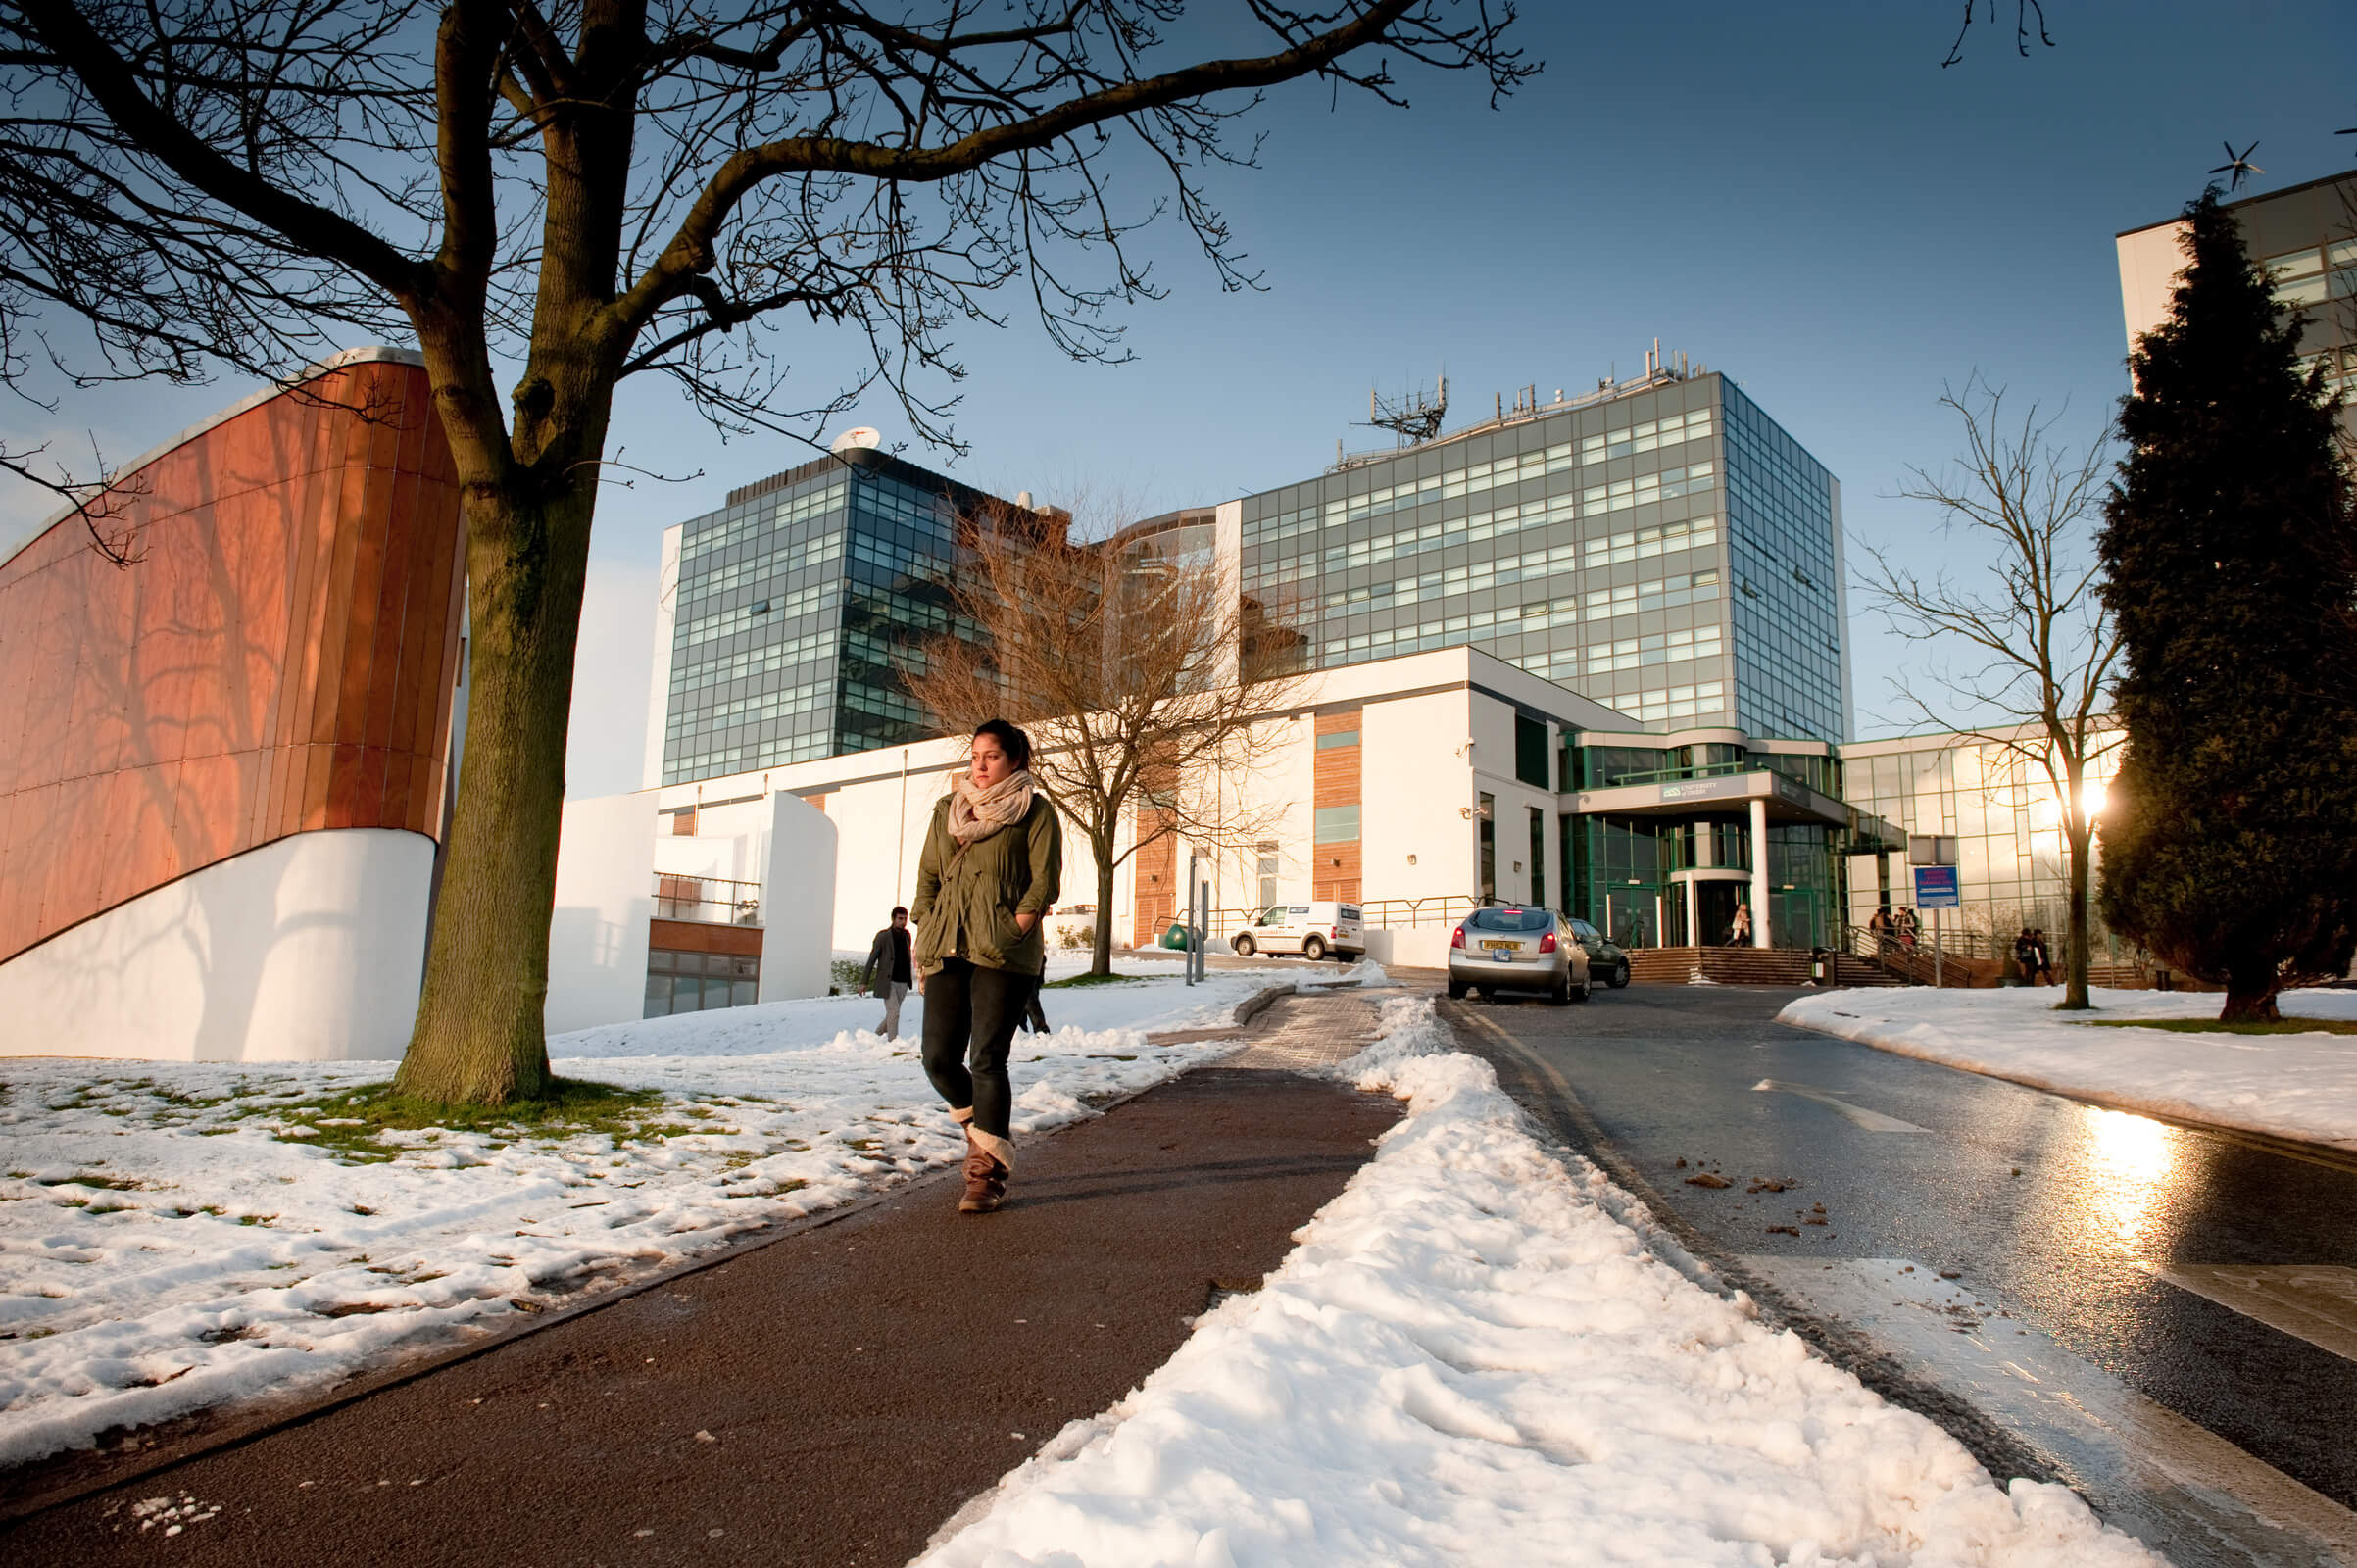 A student walking away from Kedleston Road campus in the snow